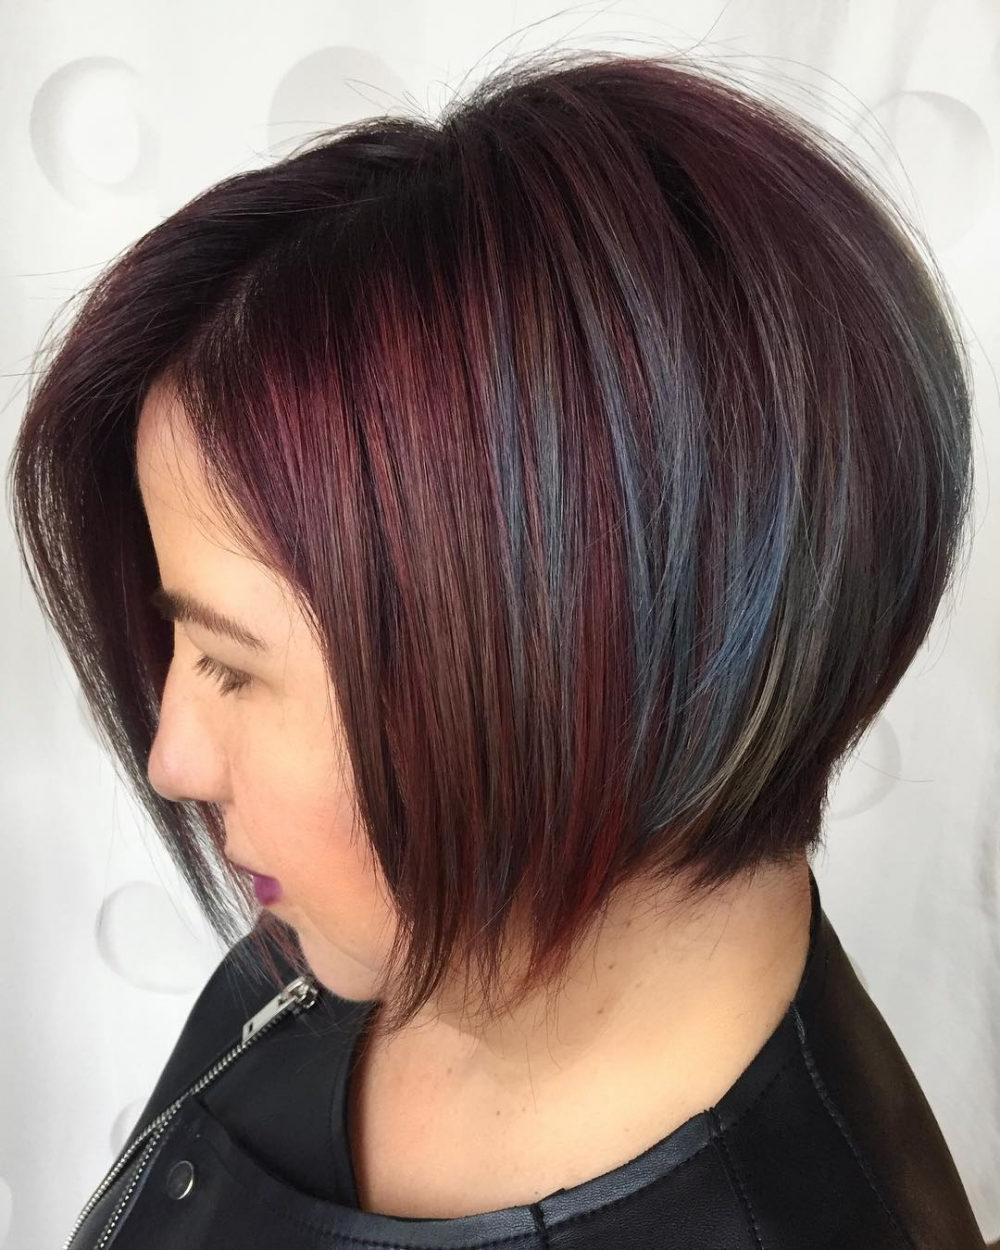 Most Recent Gorgeous Bob Hairstyles For Thick Hair Intended For 20 Flattering Short Haircuts & Hairstyles For Thick Hair In (View 14 of 20)